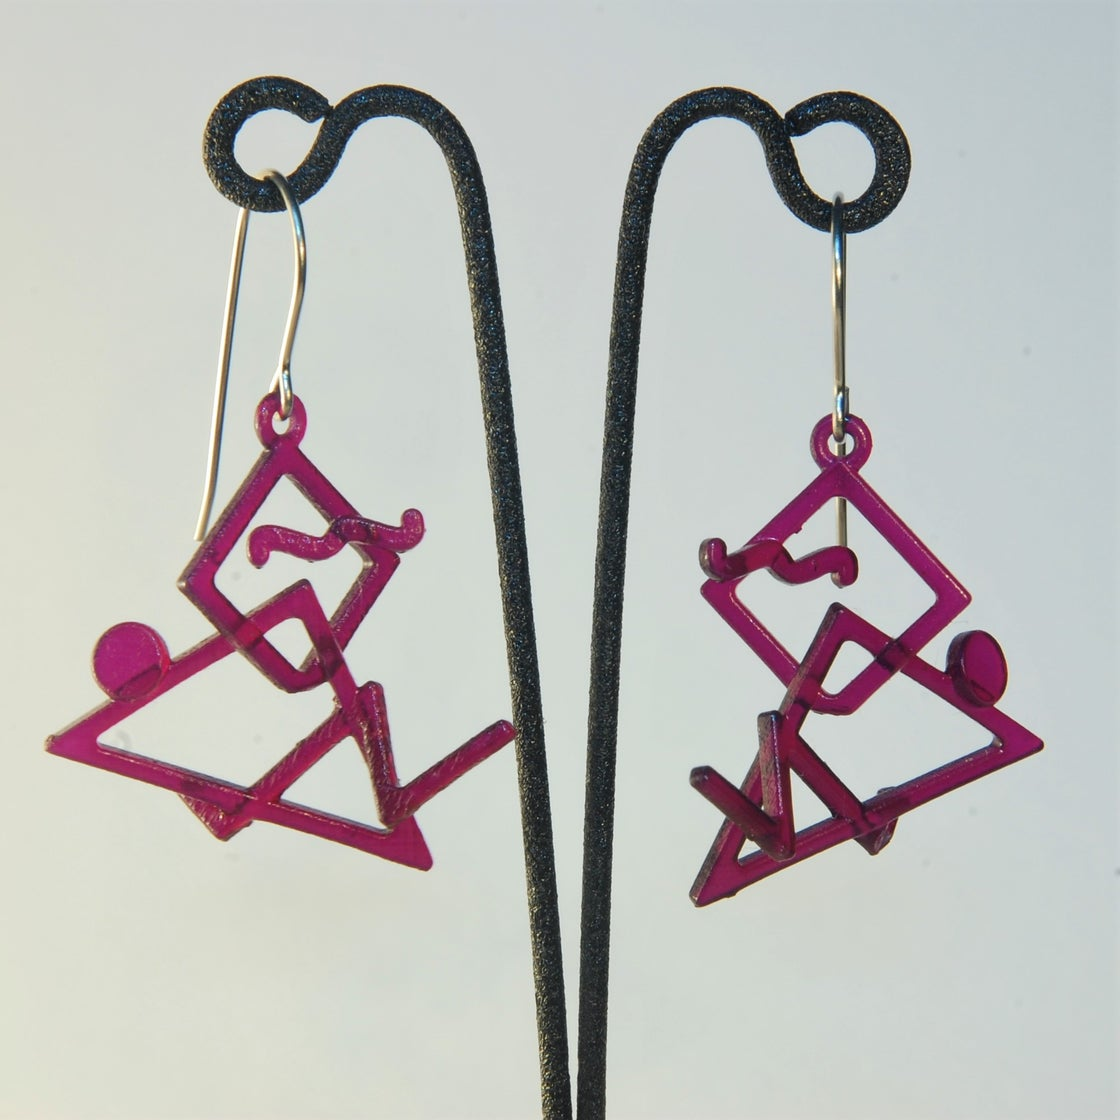 Image of Retro-3 3D Printed Earrings